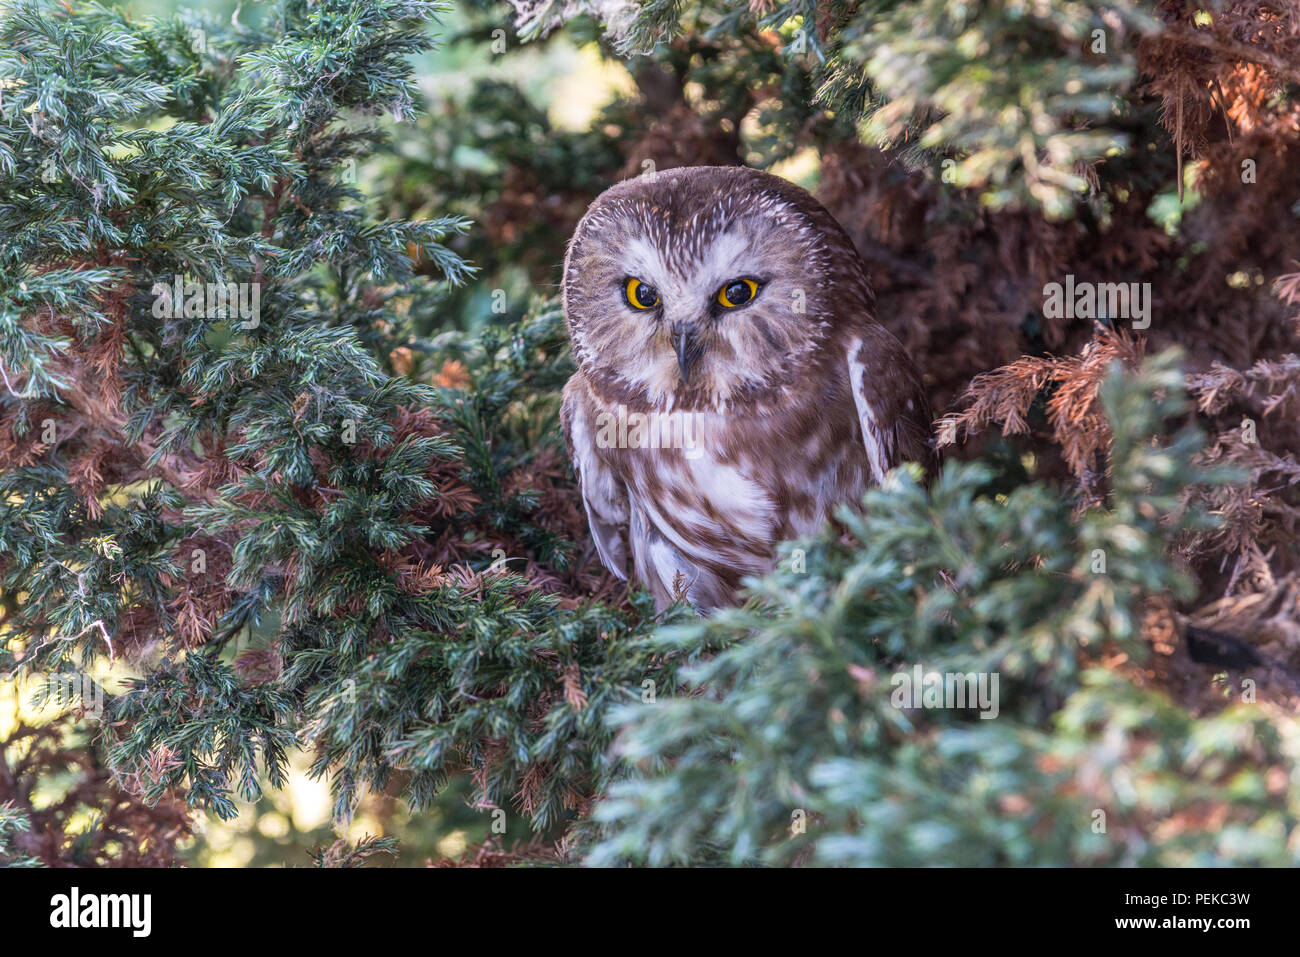 Northern Saw-whet Owl, close up in a tree, one - Stock Image